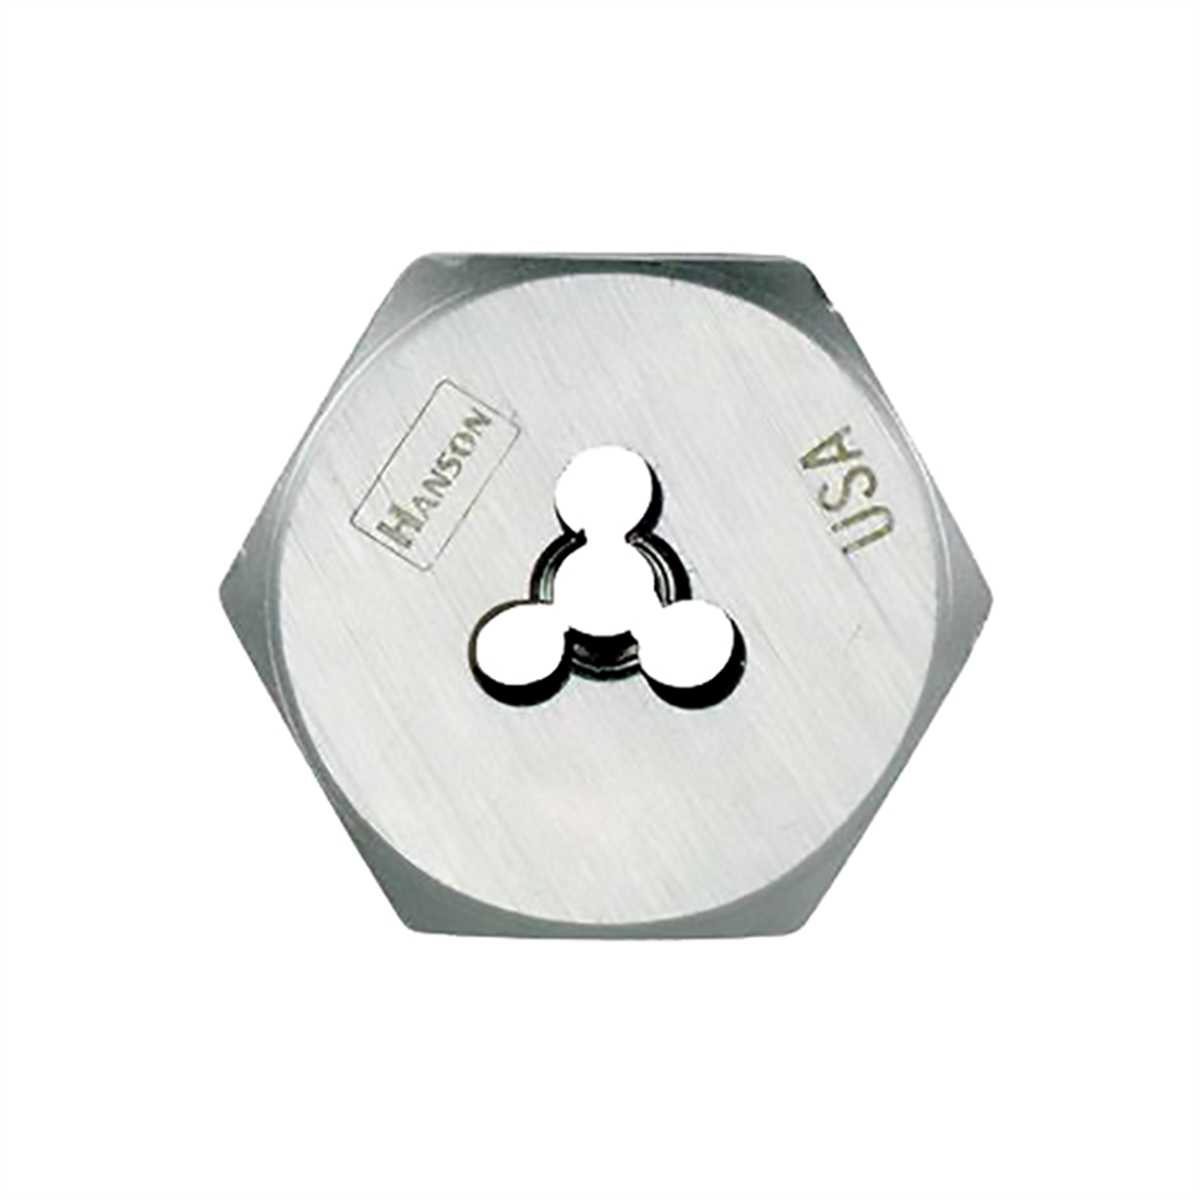 HCS Hex 1in. Across Flat Die 11MM-1.50